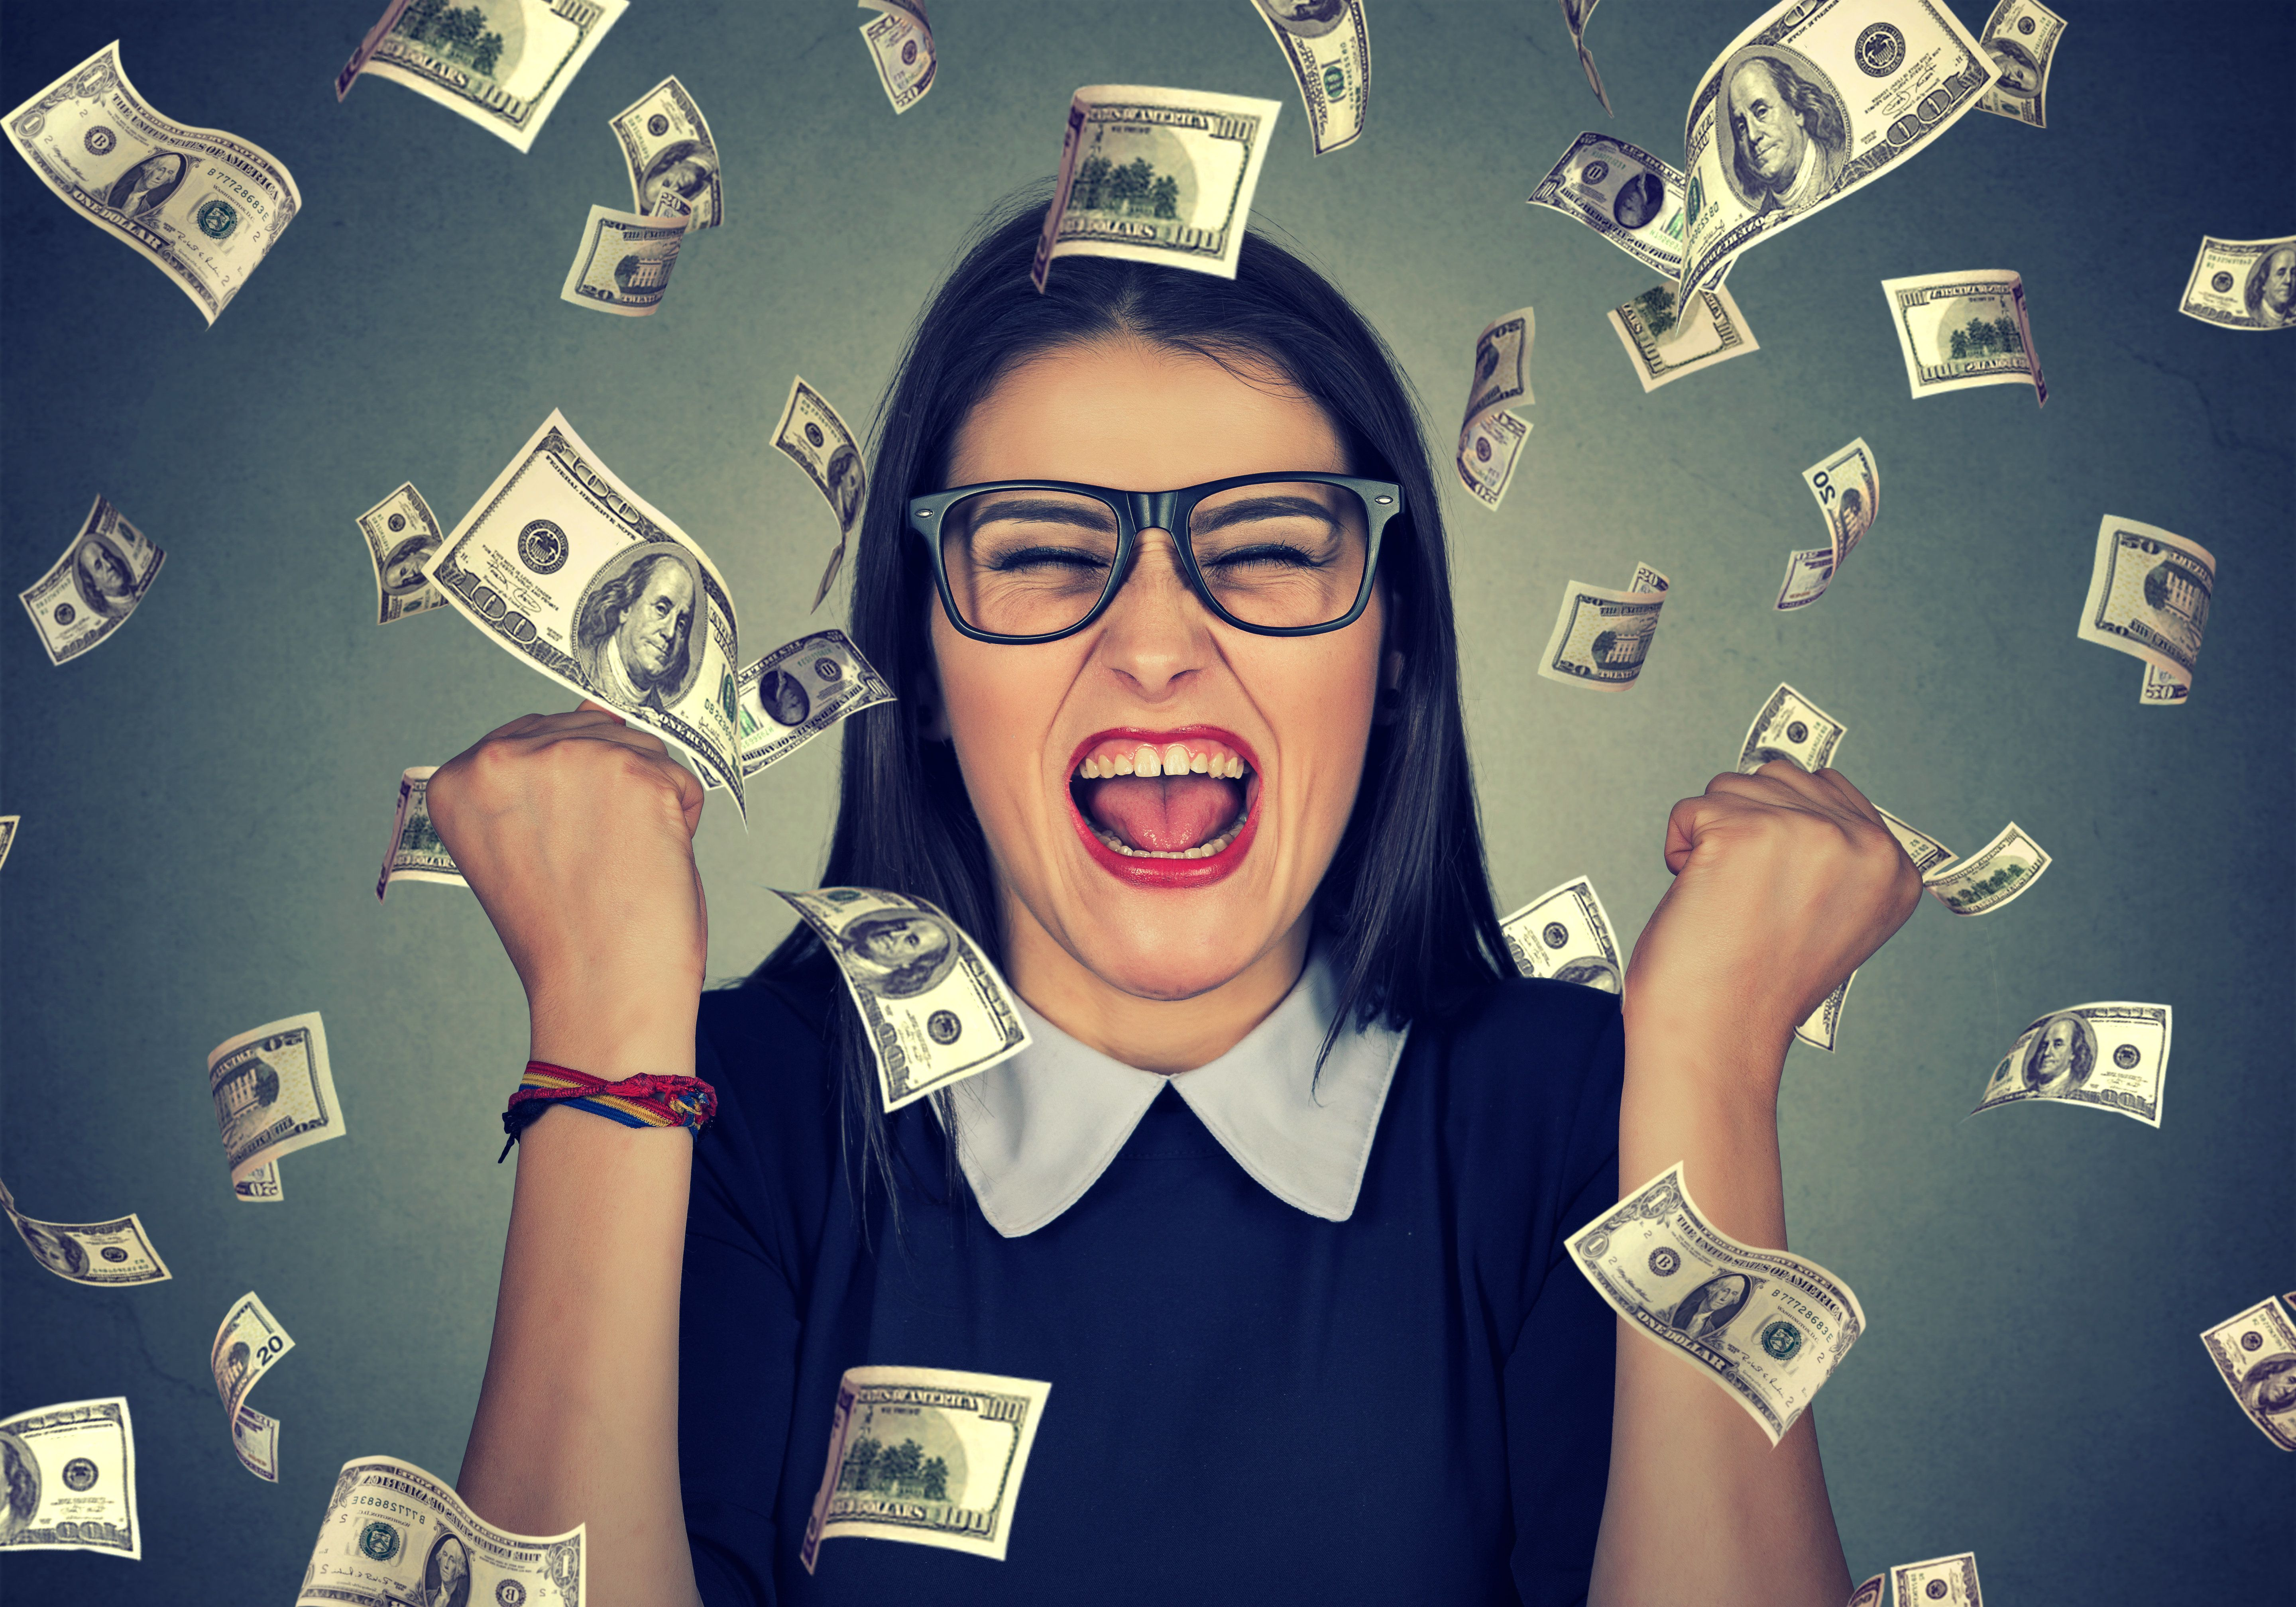 Portrait happy woman exults pumping fists ecstatic celebrates success under money rain falling down dollar bills banknotes isolated on gray wall background. Financial achievement  concept